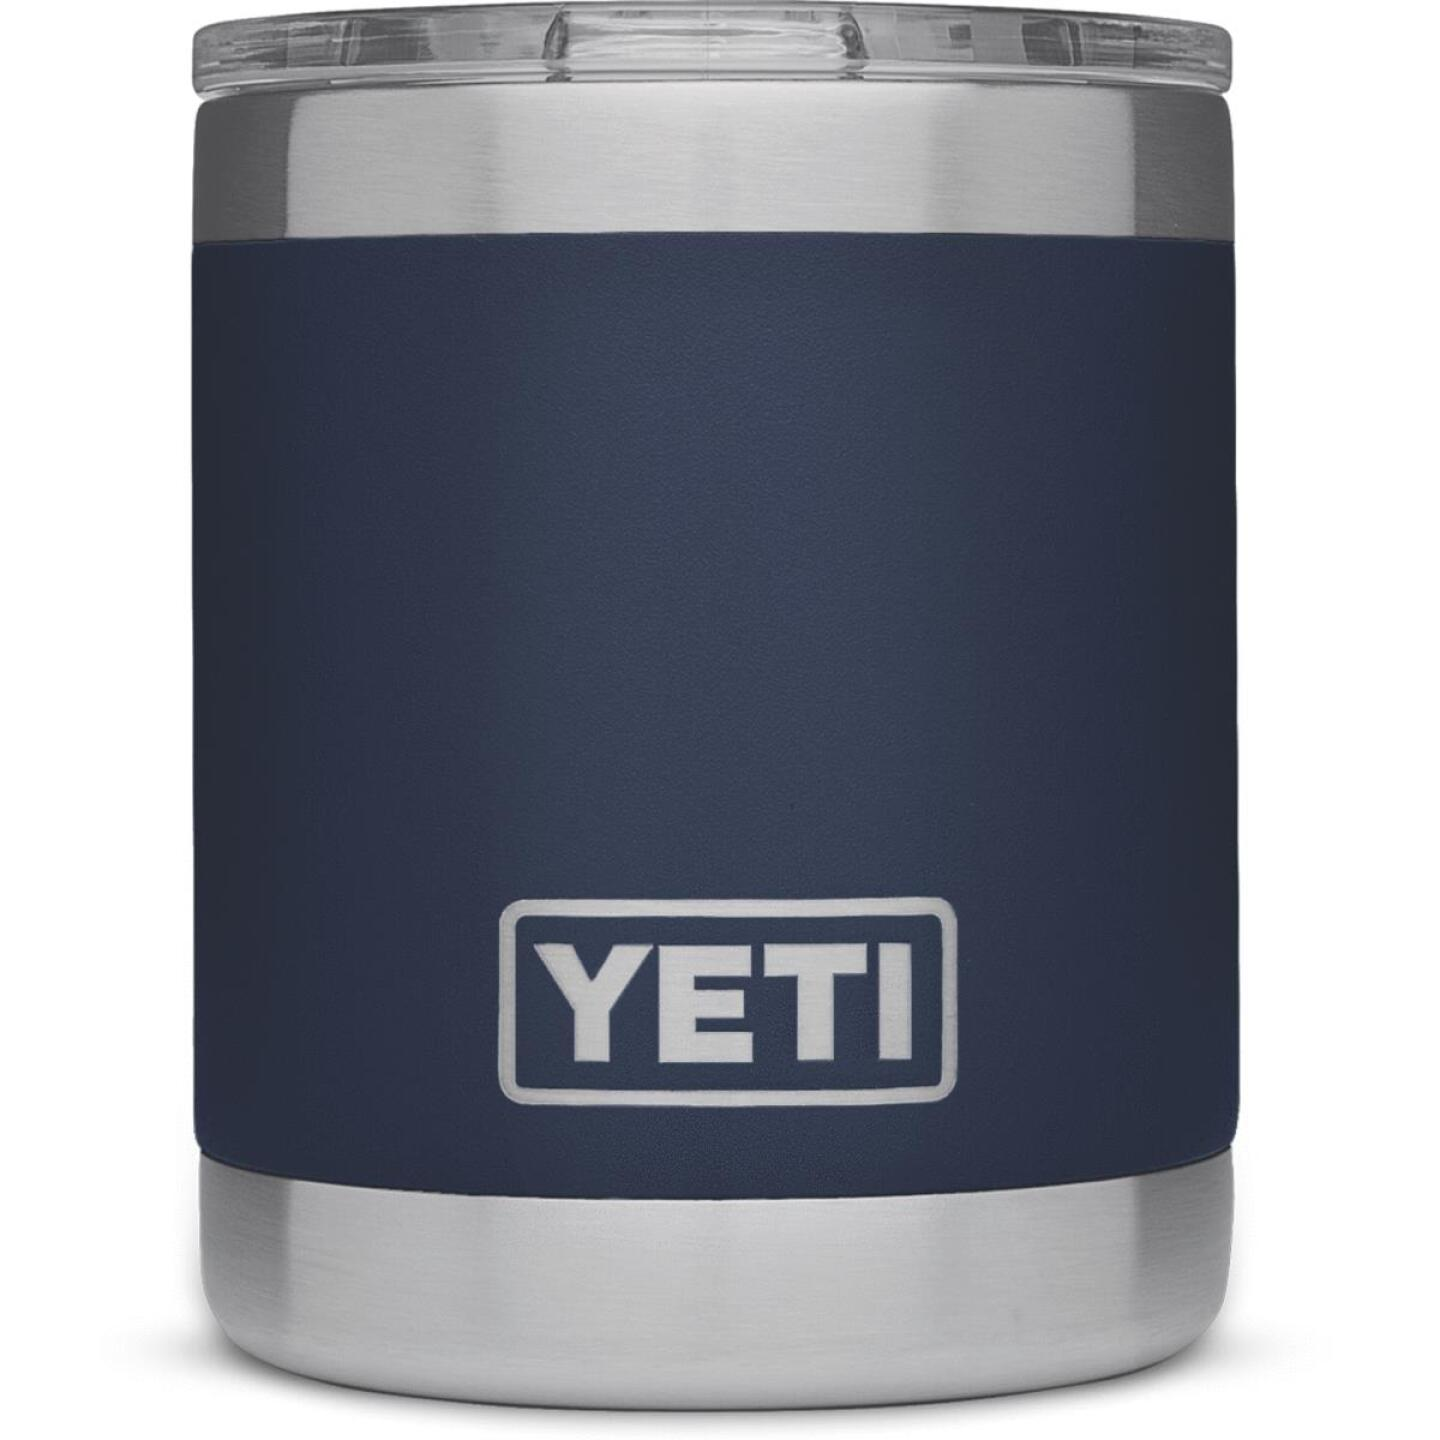 Yeti Rambler Lowball 10 Oz. Navy Blue Stainless Steel Insulated Tumbler Image 2